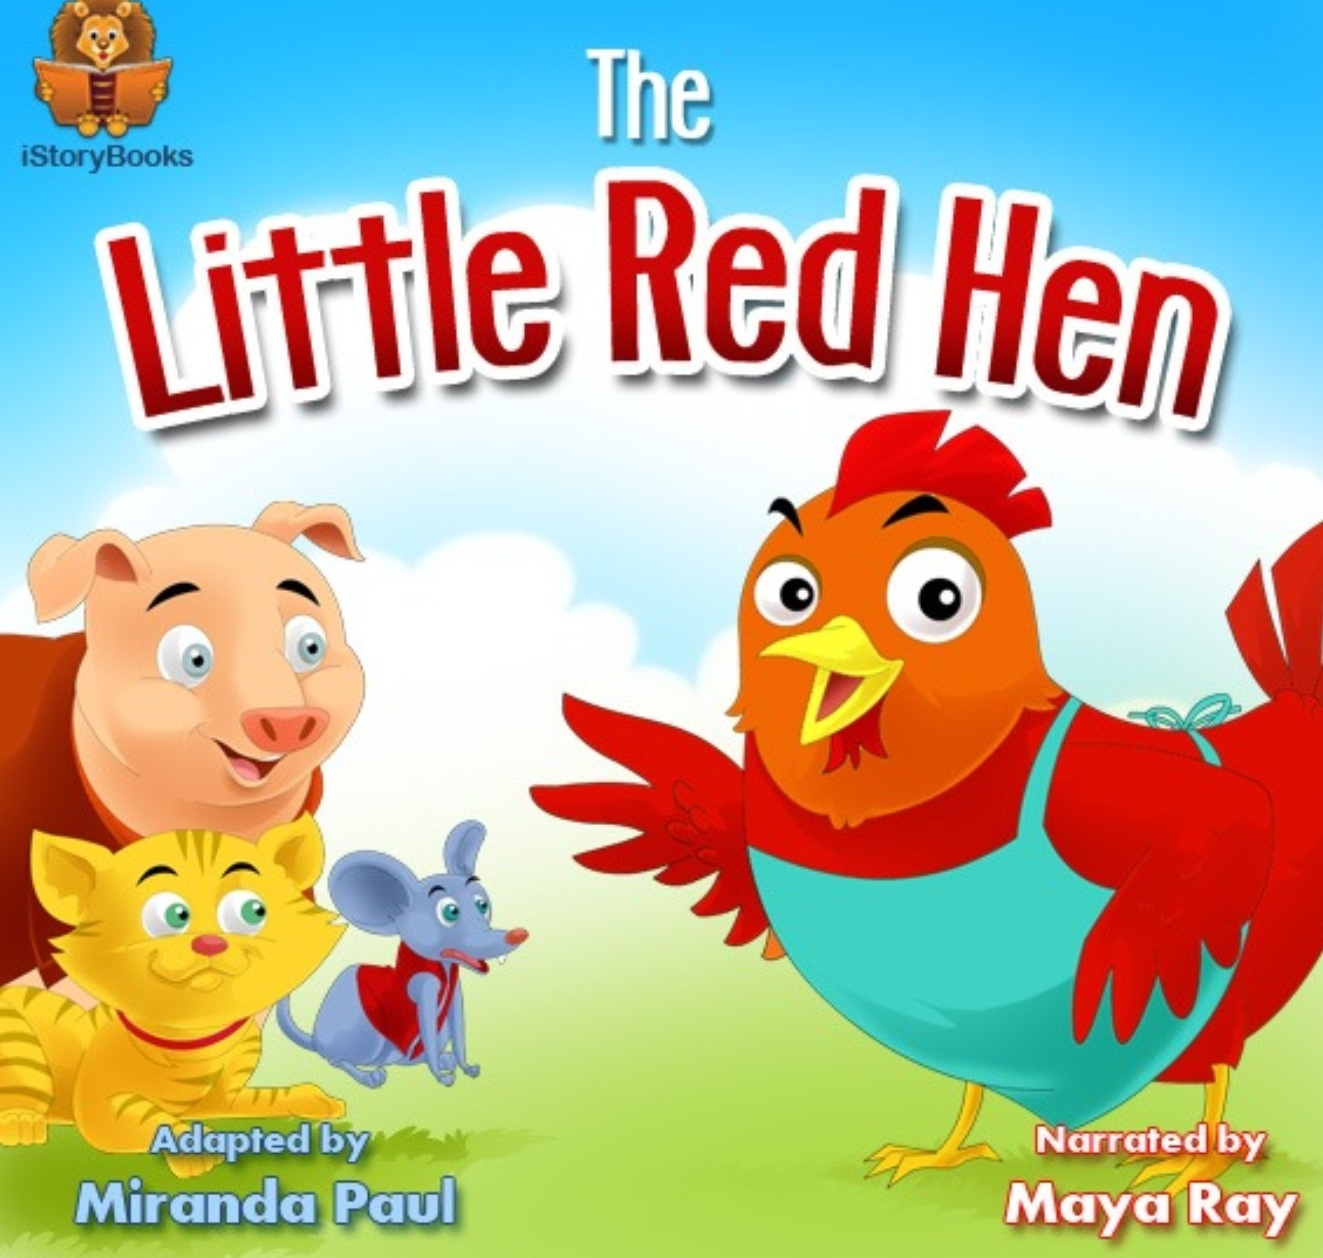 Summary Of The Little Red Hen